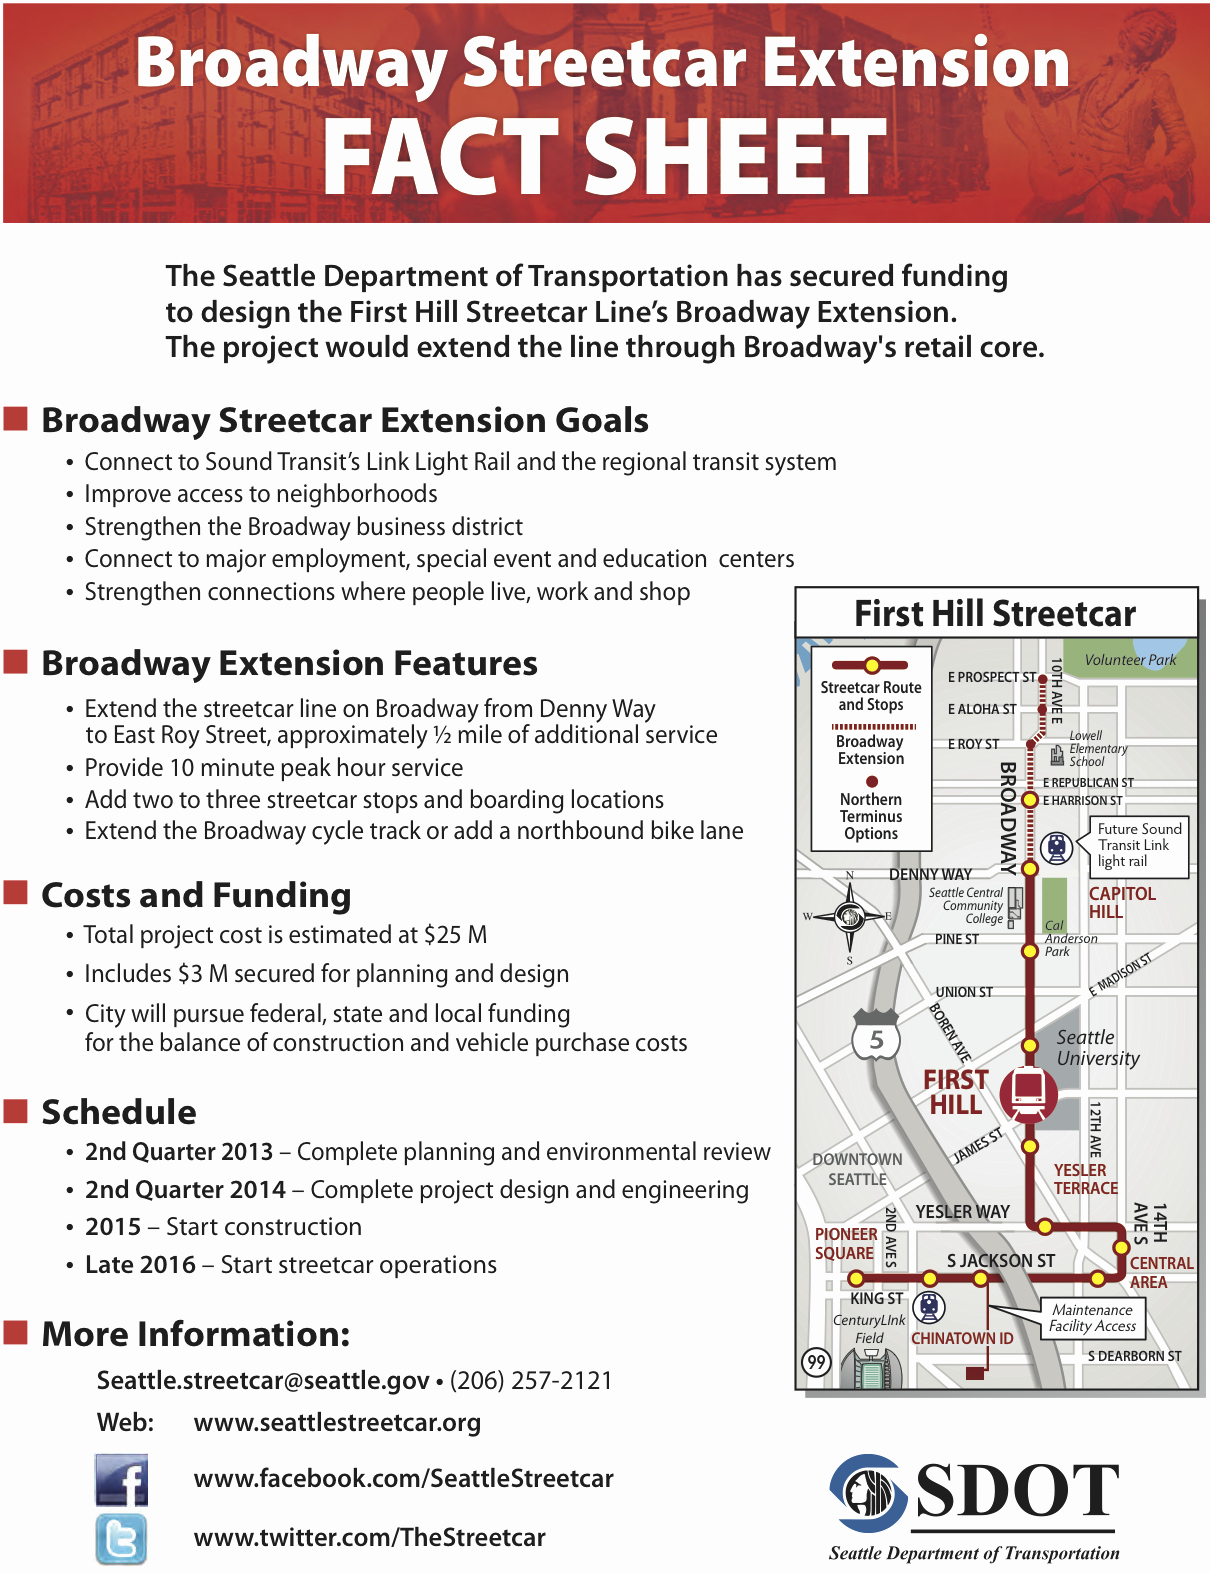 One Page Fact Sheet Template Fresh Broadway Streetcar Extention Will Include Cycle Track